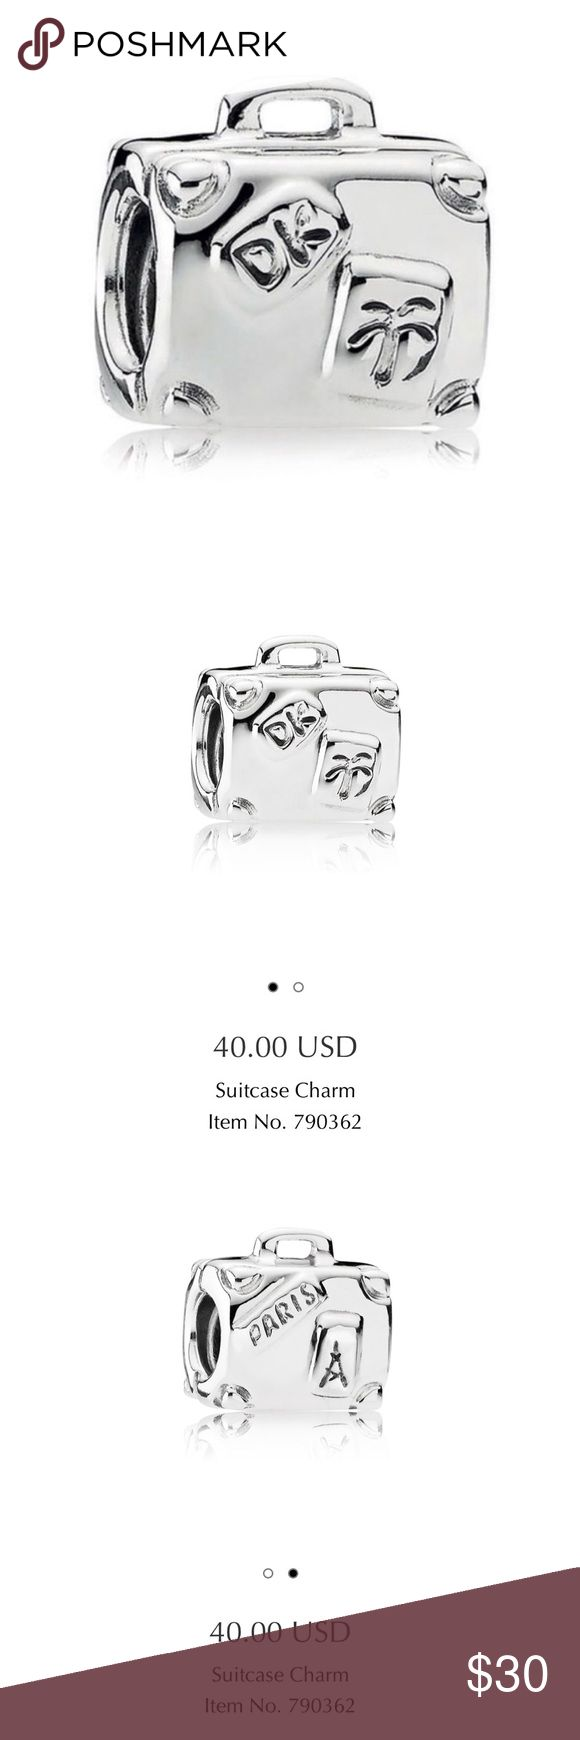 PANDORA Authentic Suitcase Sterling Silver Charm Authentic Pandora Suitcase Charm! Sterling Silver. Used in a pandora bracelet and worn several times but cleaned recently with an authentic pandora cleaning cloth. Like new condition. Perfect for a traveler! Let me know if you have any questions prior to purchase! 💕🤗 Pandora Jewelry Bracelets